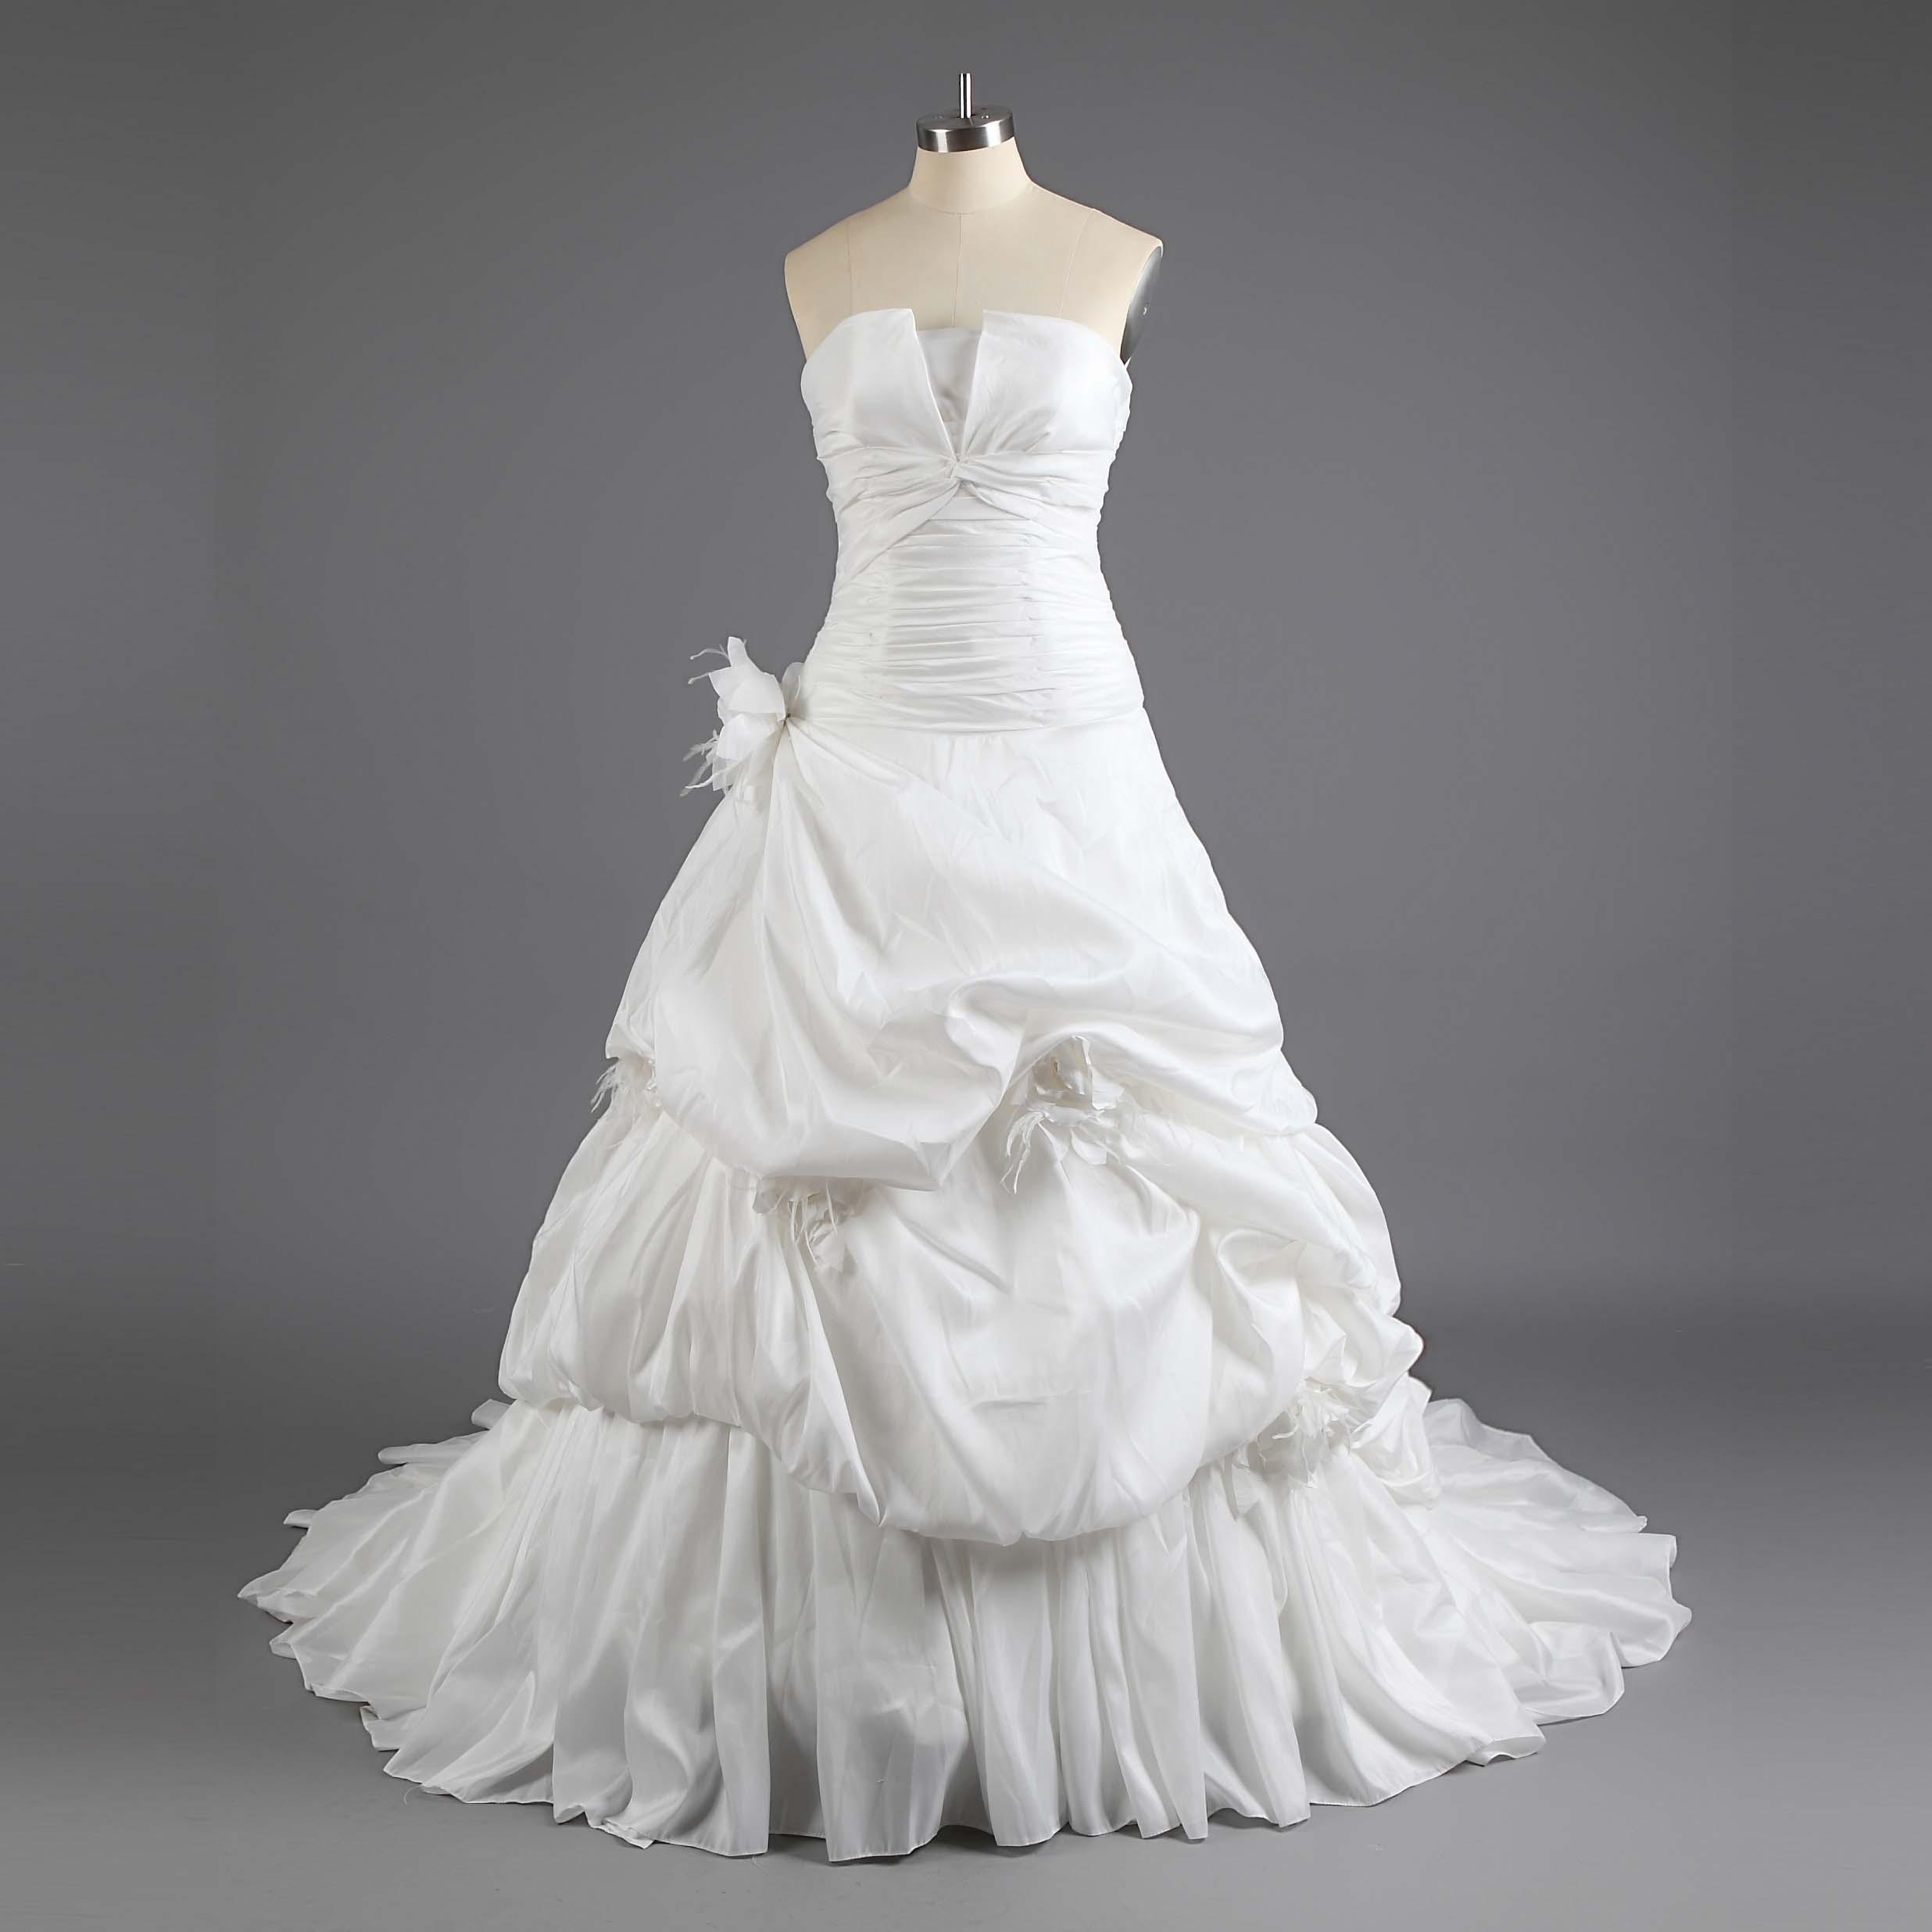 Style taffeta corset wedding dresses tiered hand made flower luxury